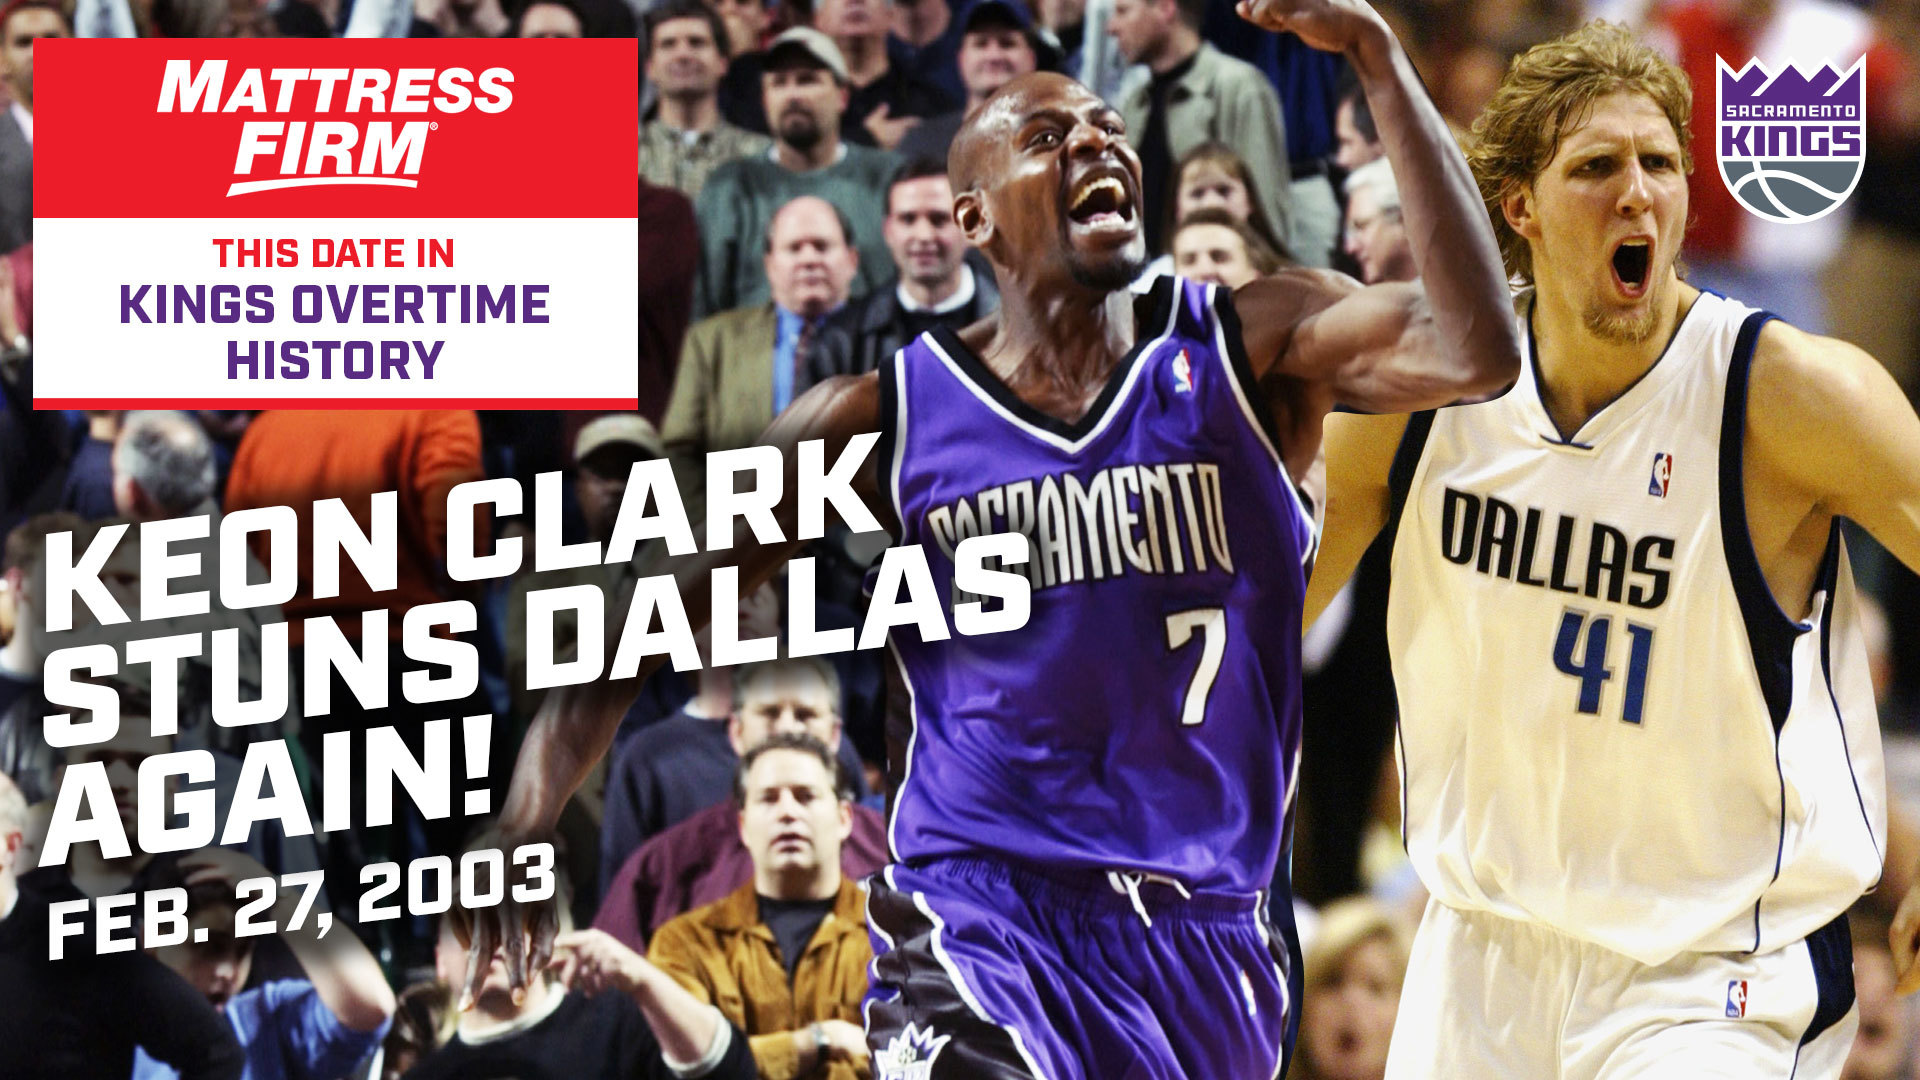 This Date in Kings OT History: Clark Stuns Dallas (AGAIN!) 2.23.2003